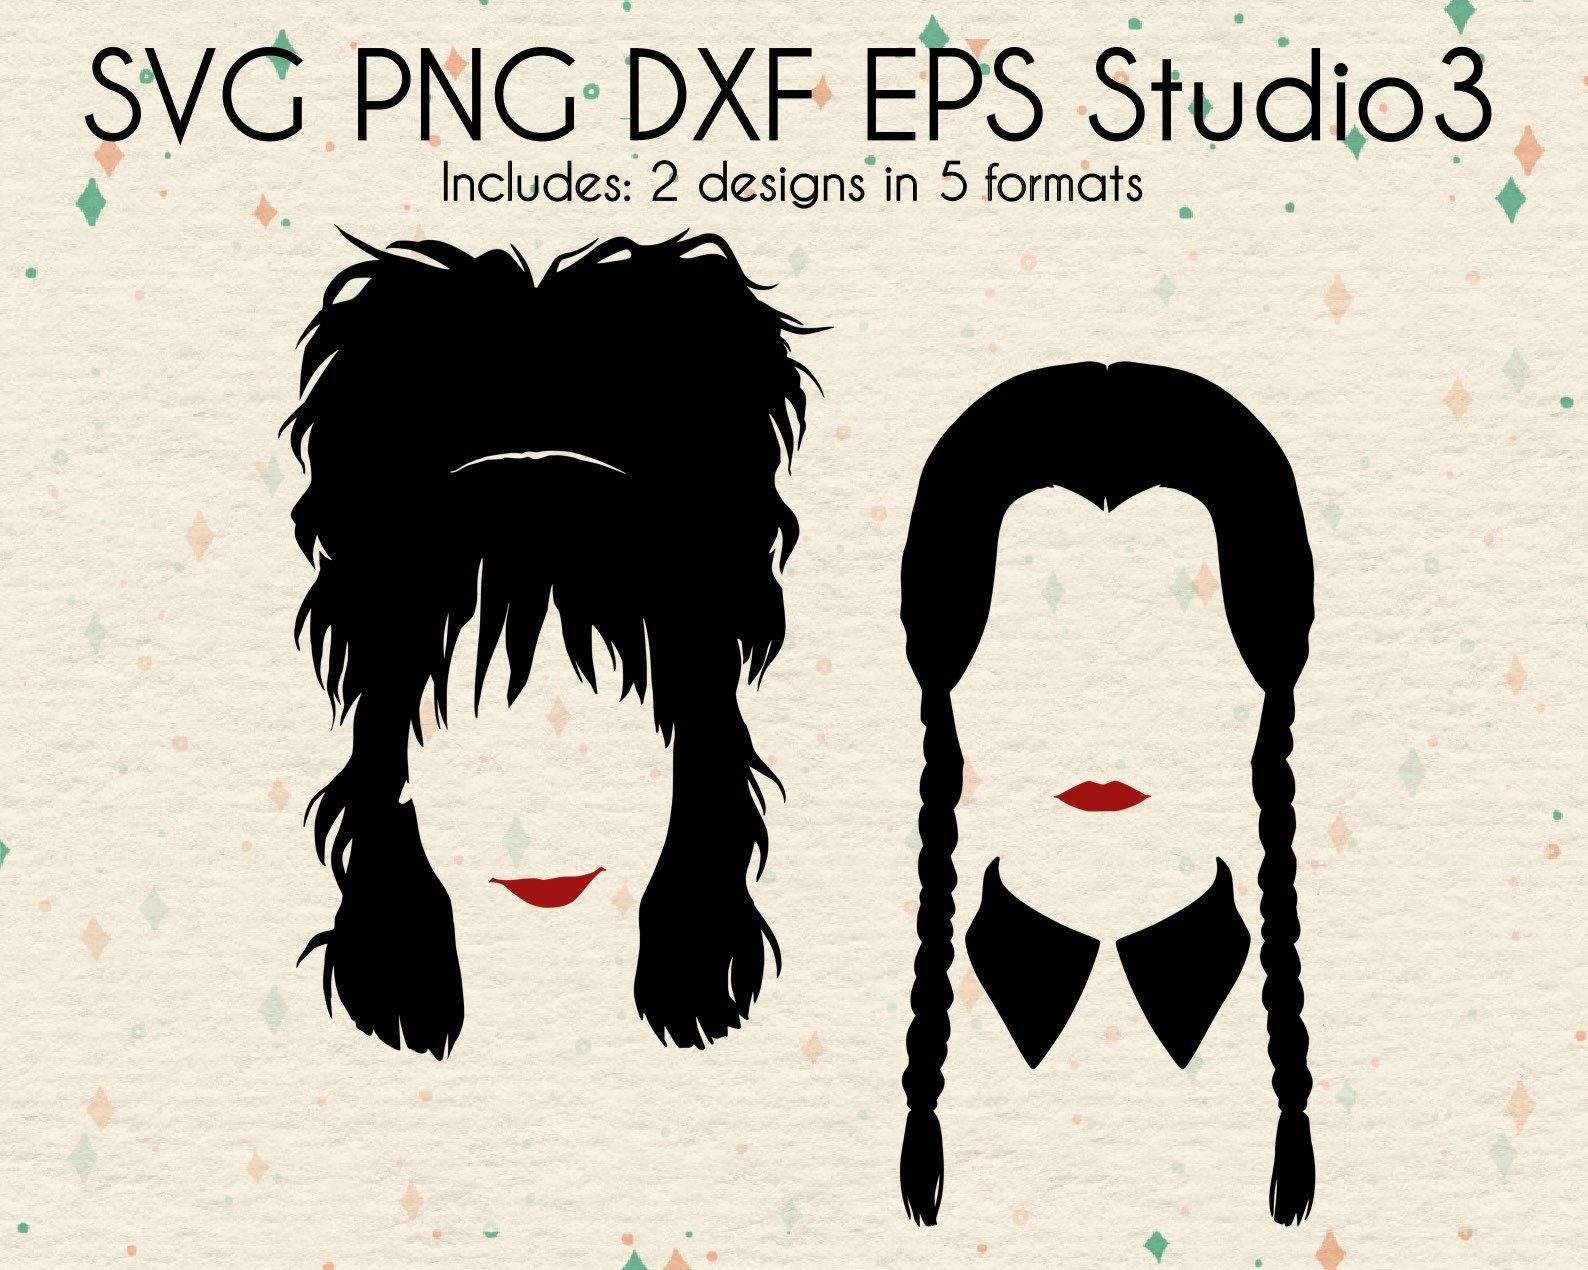 Lydia Deetz & Wednesday Addams SVG Files Beetlejuice